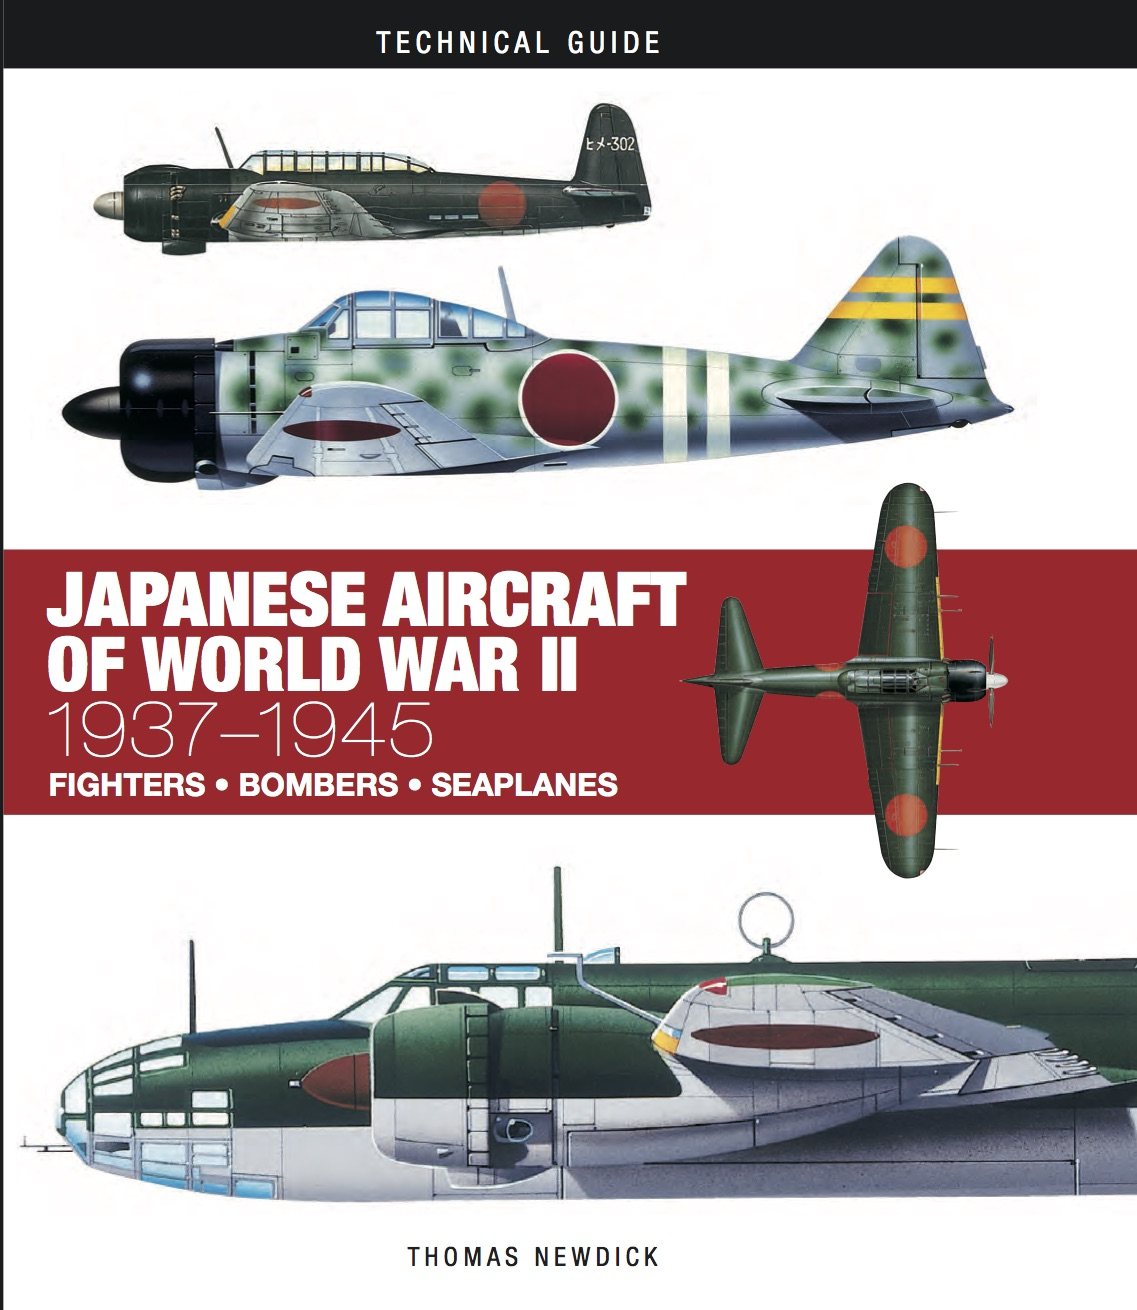 Japanese Aircraft of World War II: Technical Guide [128pp]